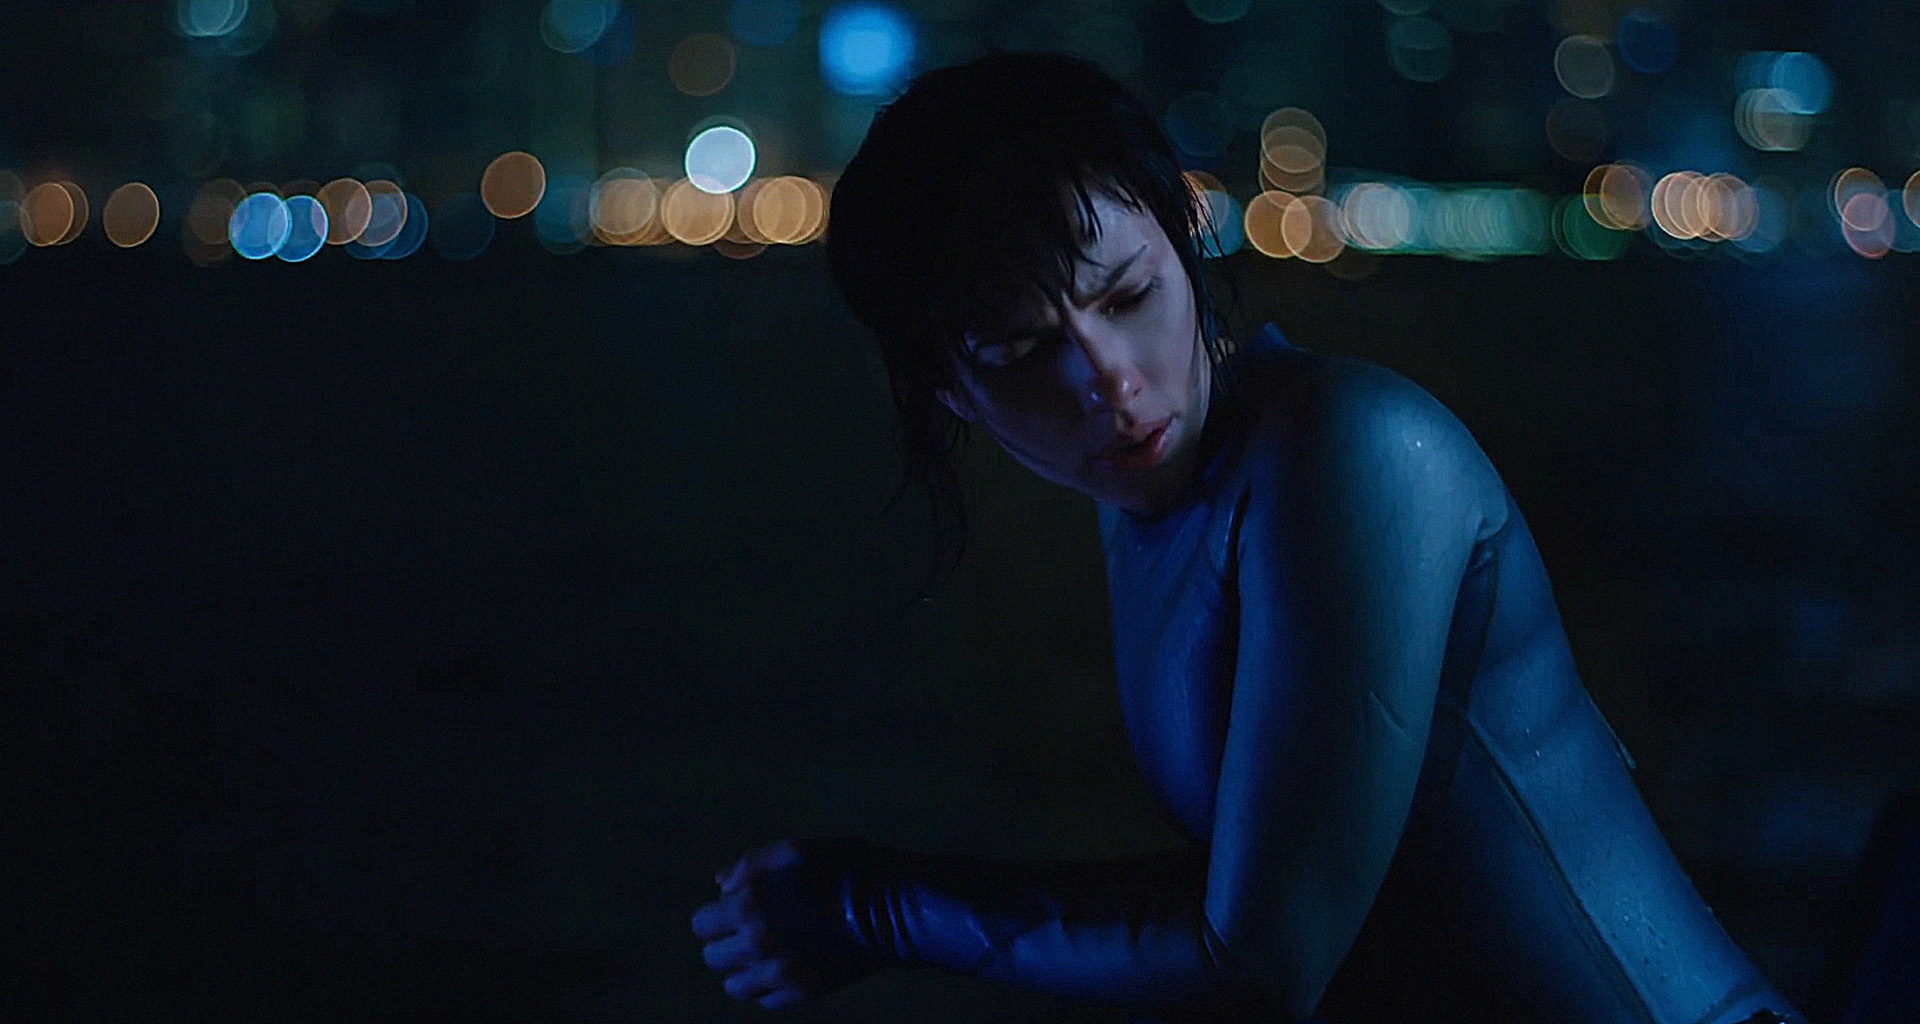 Ghost In The Shell 2017 Wallpaper And Background Image